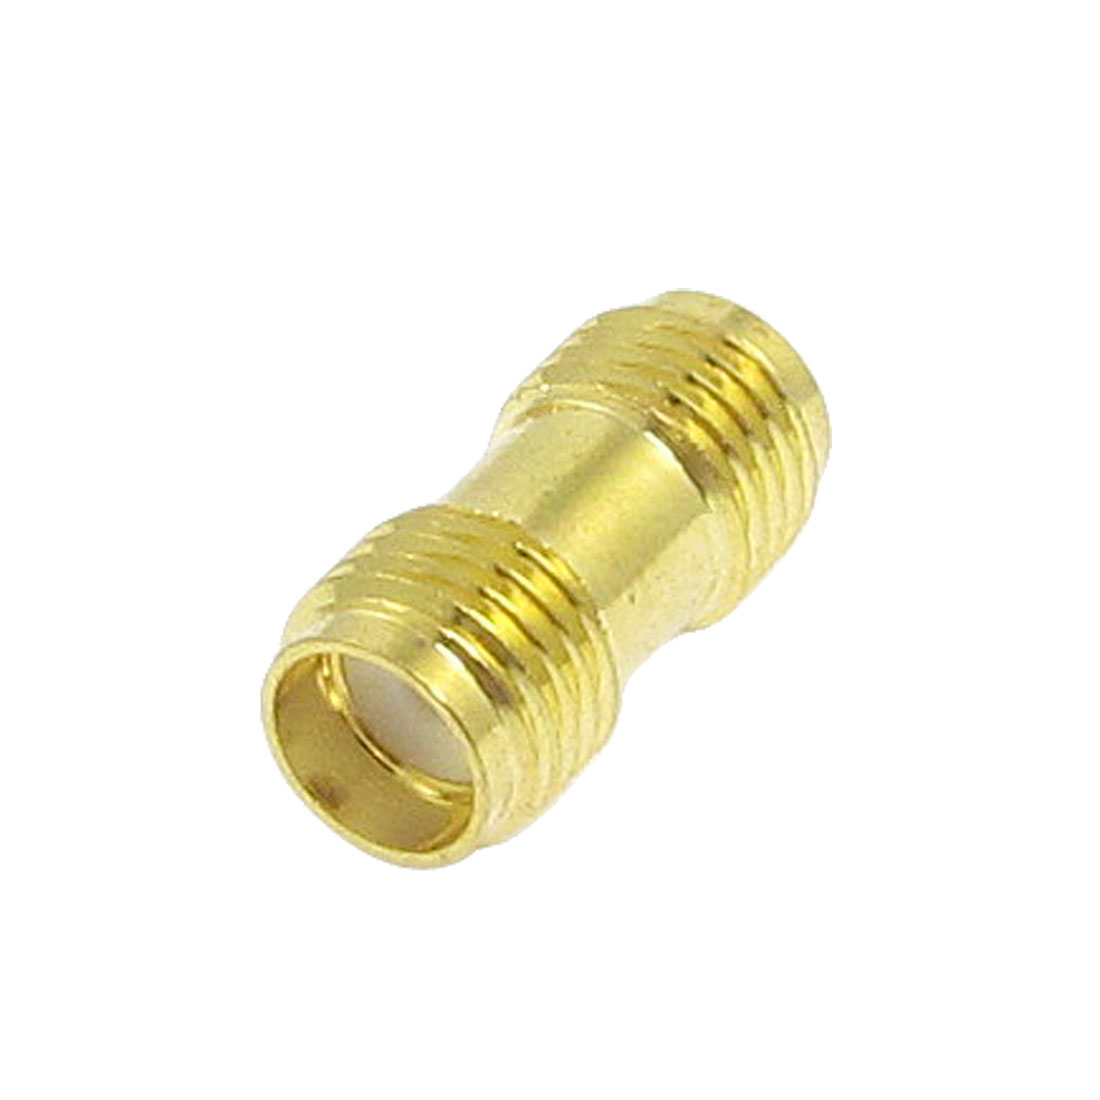 RP SMA Male to RP SMA Male Adapter Coaxial Connector